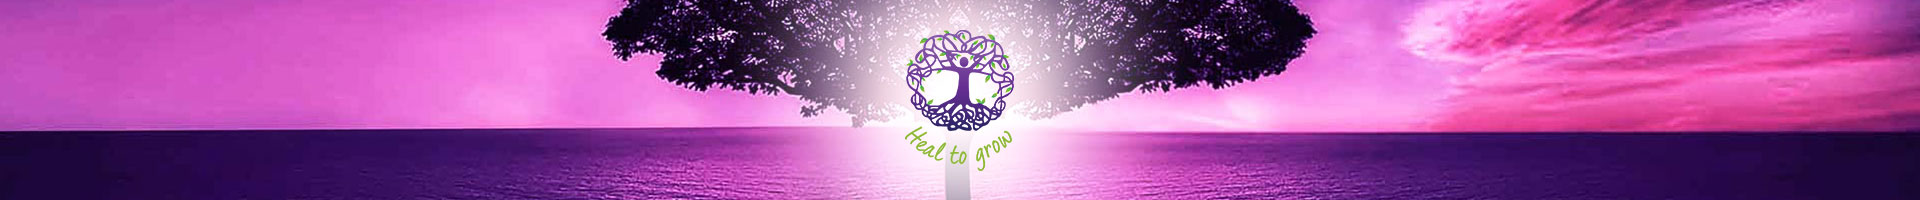 Heal to grow Cover